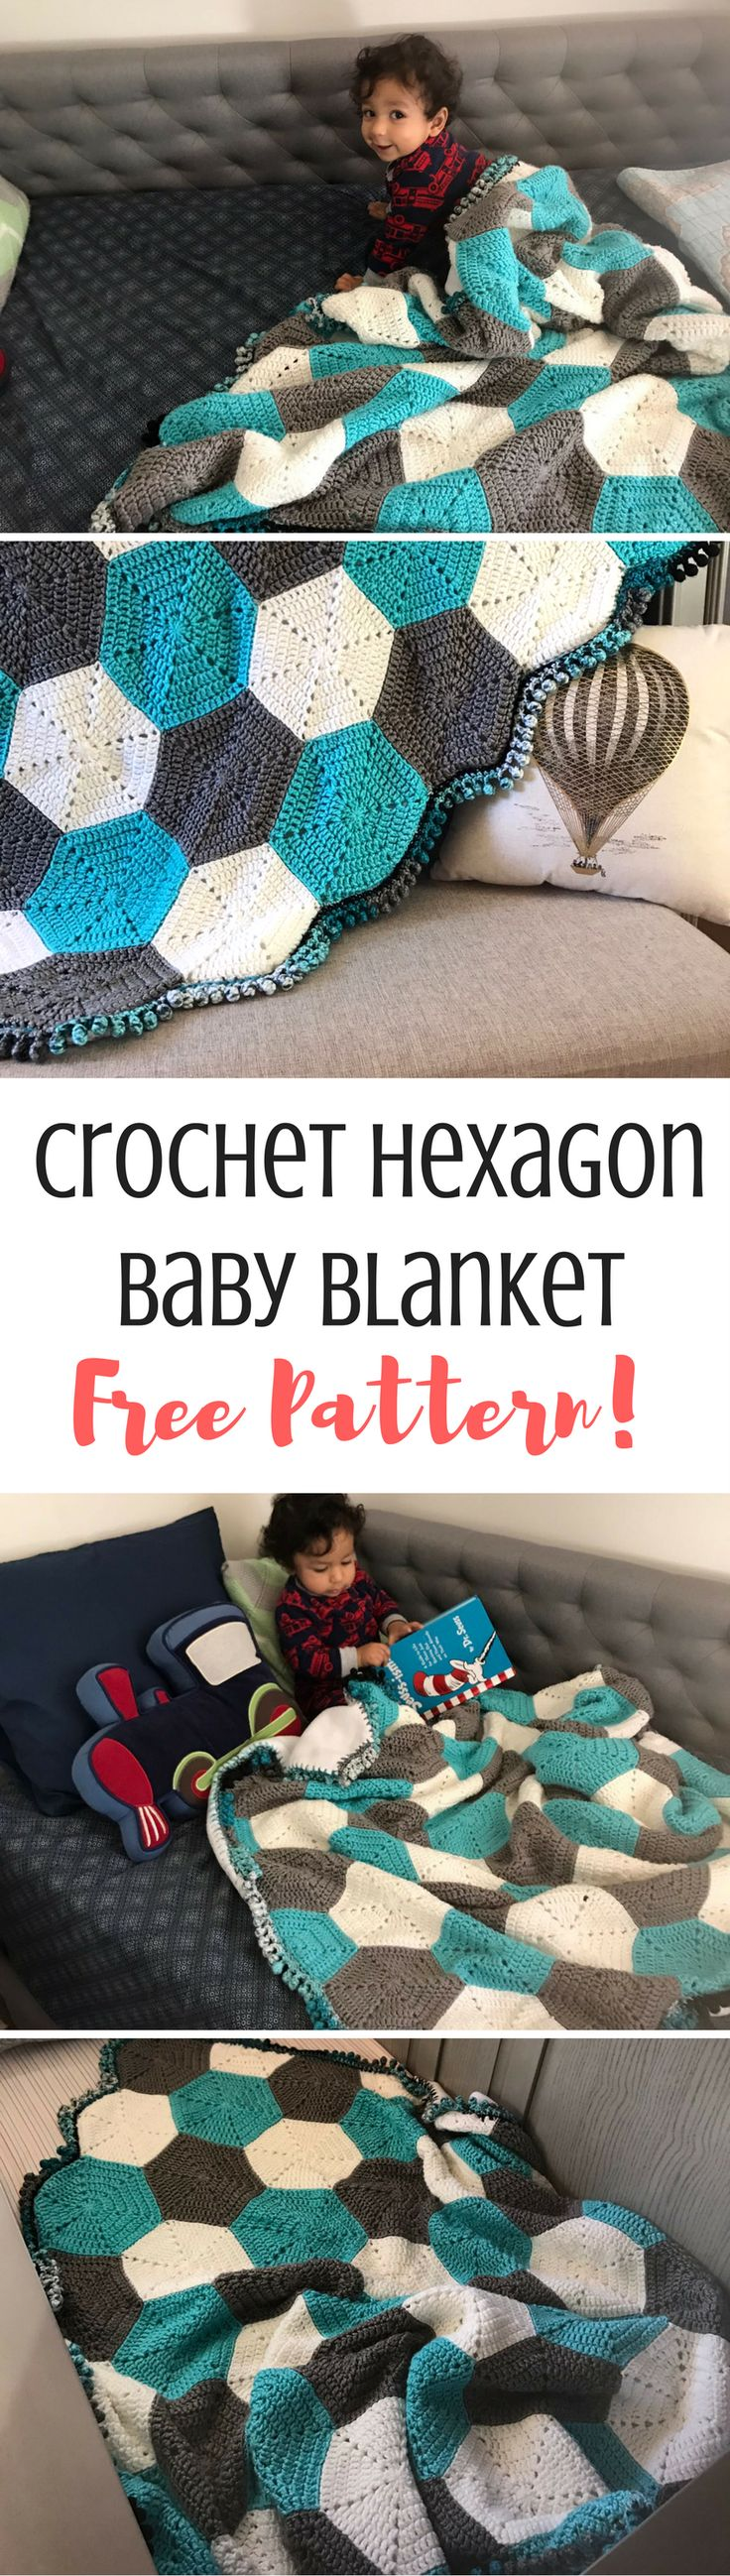 This is a super easy hexagon baby blanket that's going to blow your mind! Look how cool that is! Get the free crochet pattern pf this baby blanket on the blog